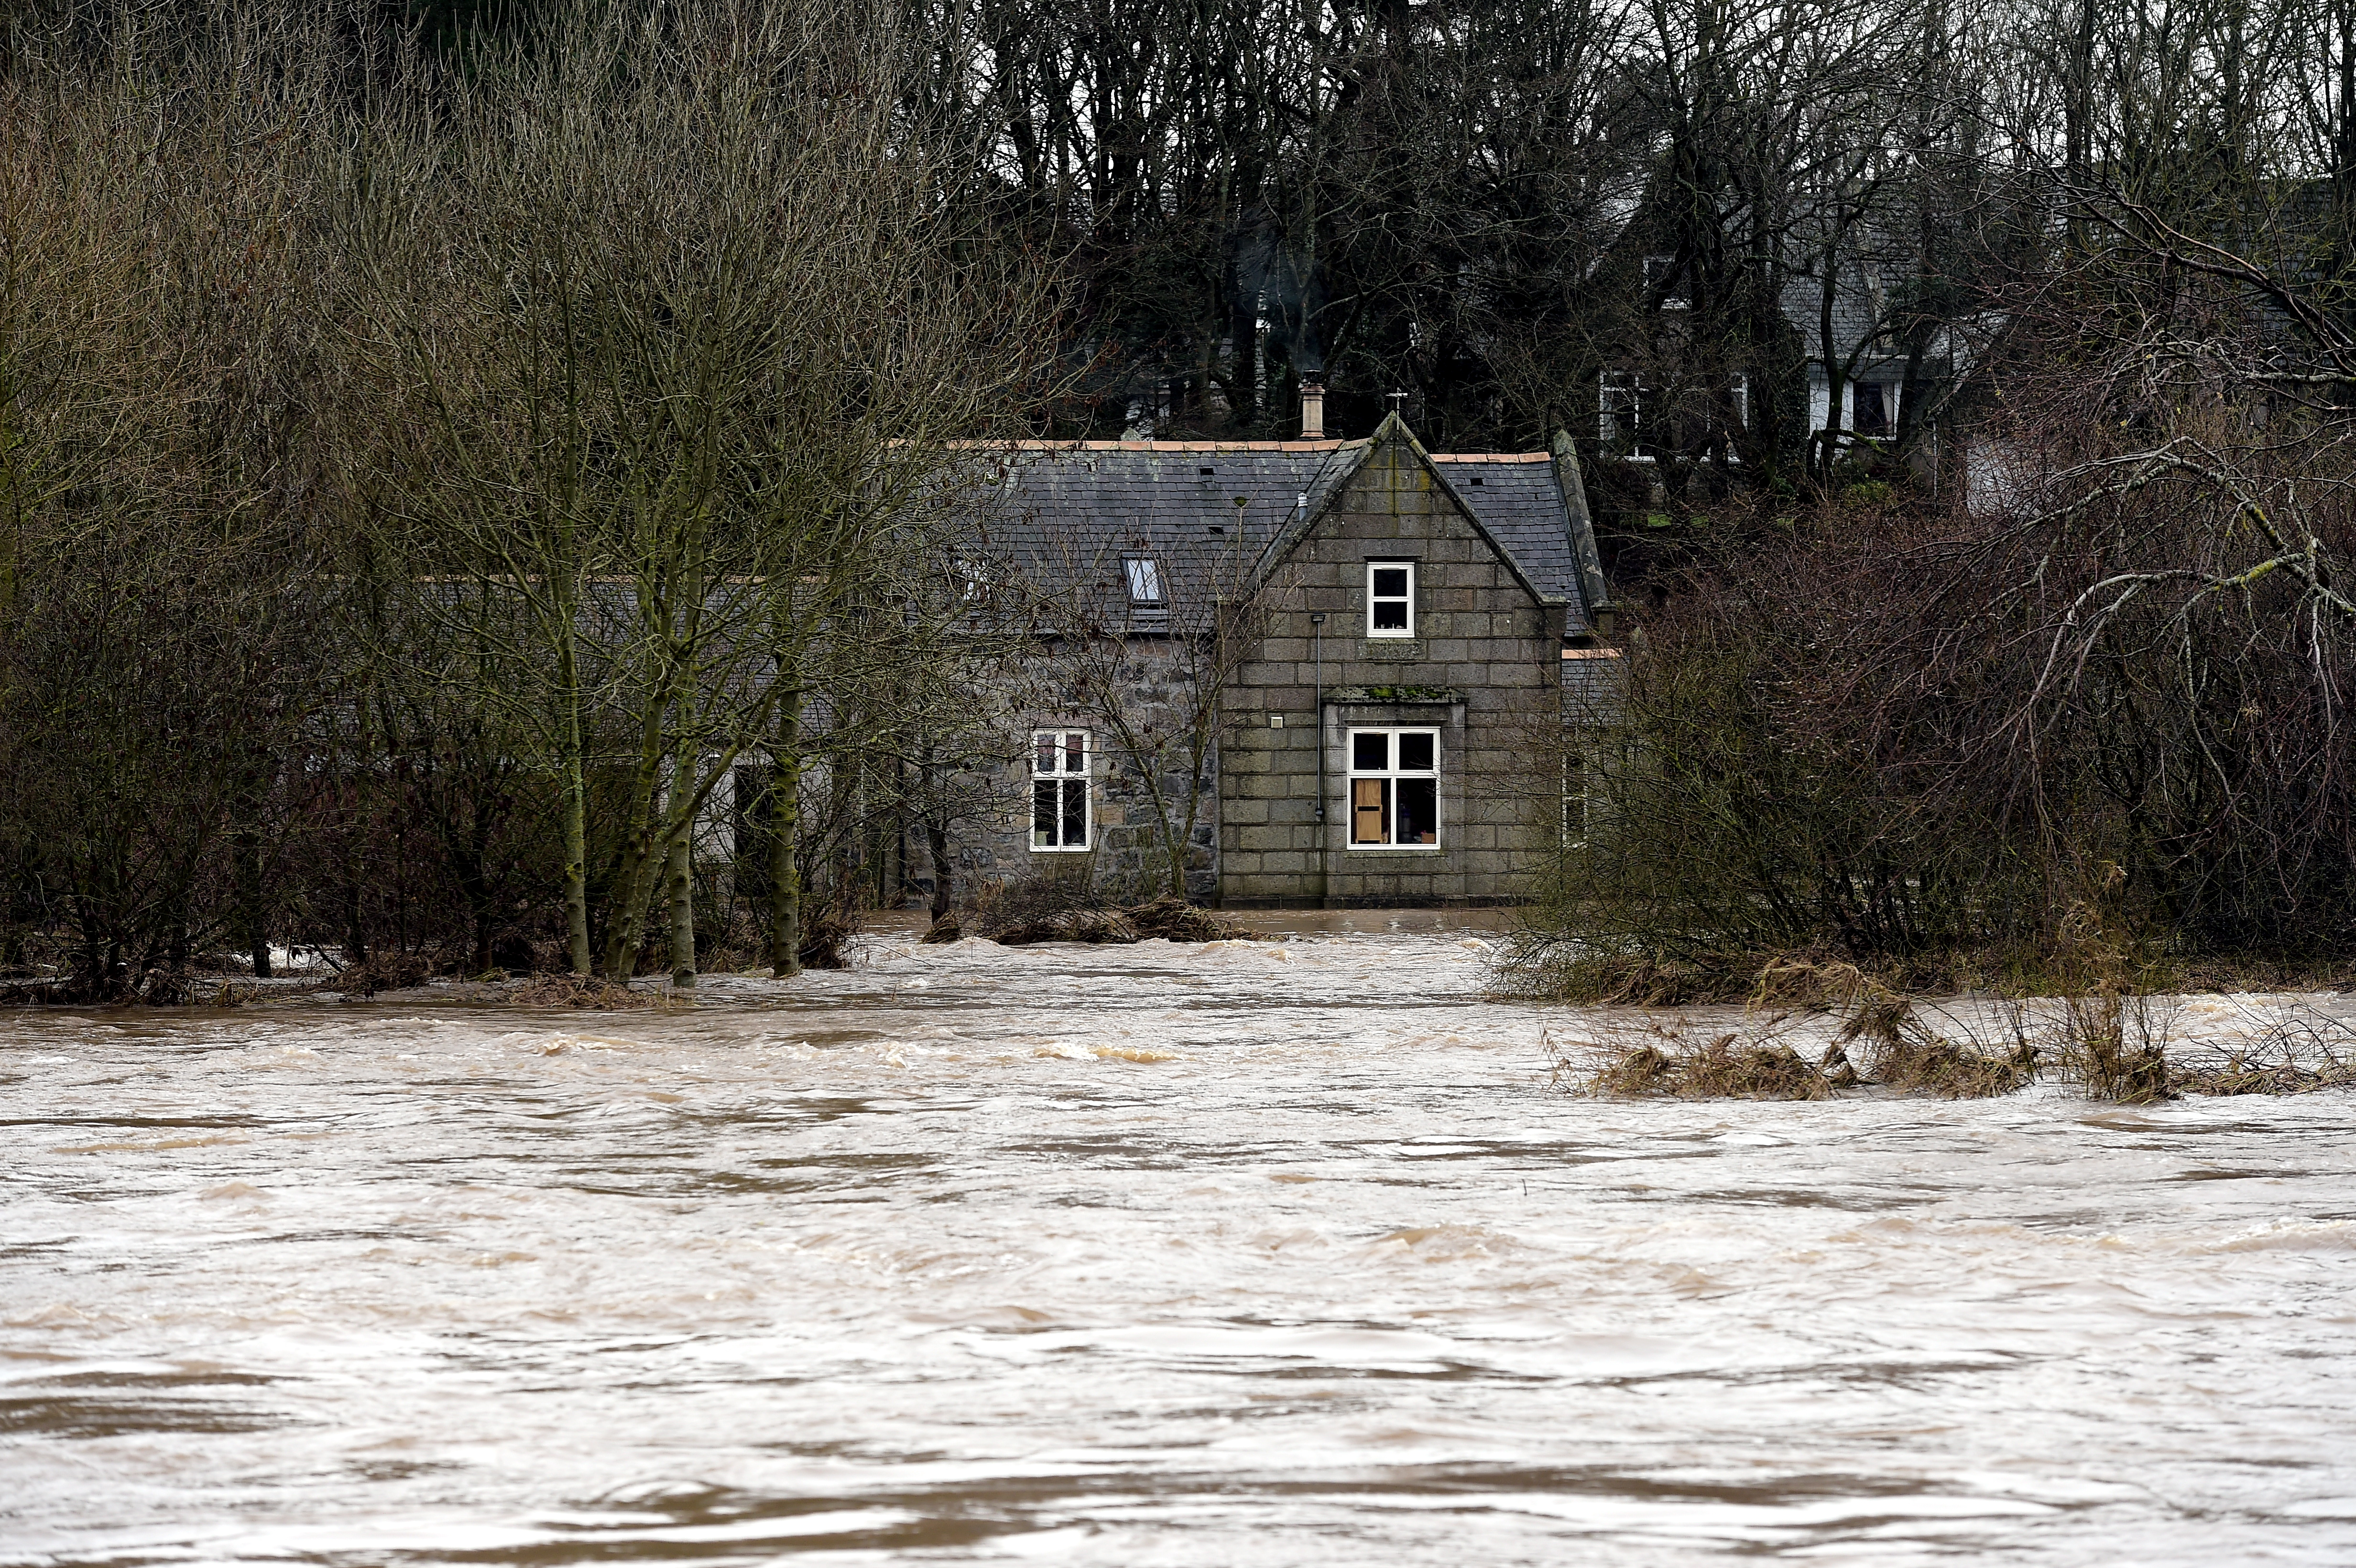 The event will focus on the flood events of 2016 when the River Ythan burst it's banks at Ellon. (Picture by Kami Thomson)